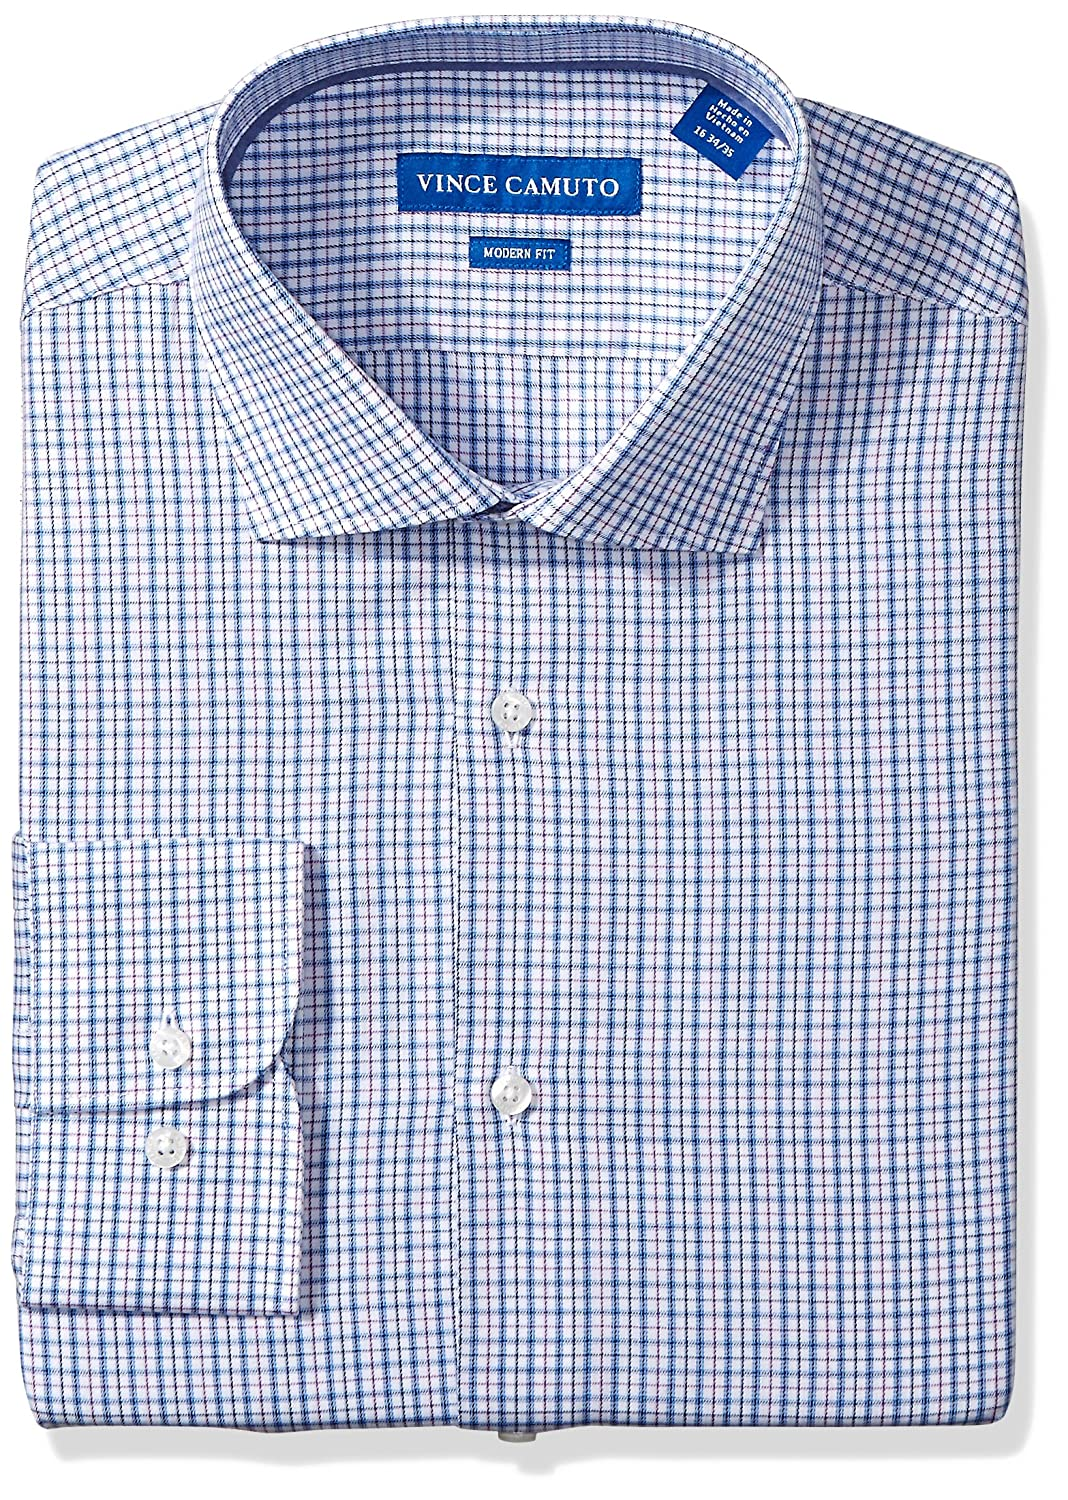 Vince Camuto Mens Modern Fit Multi Color Check Dress Shirt